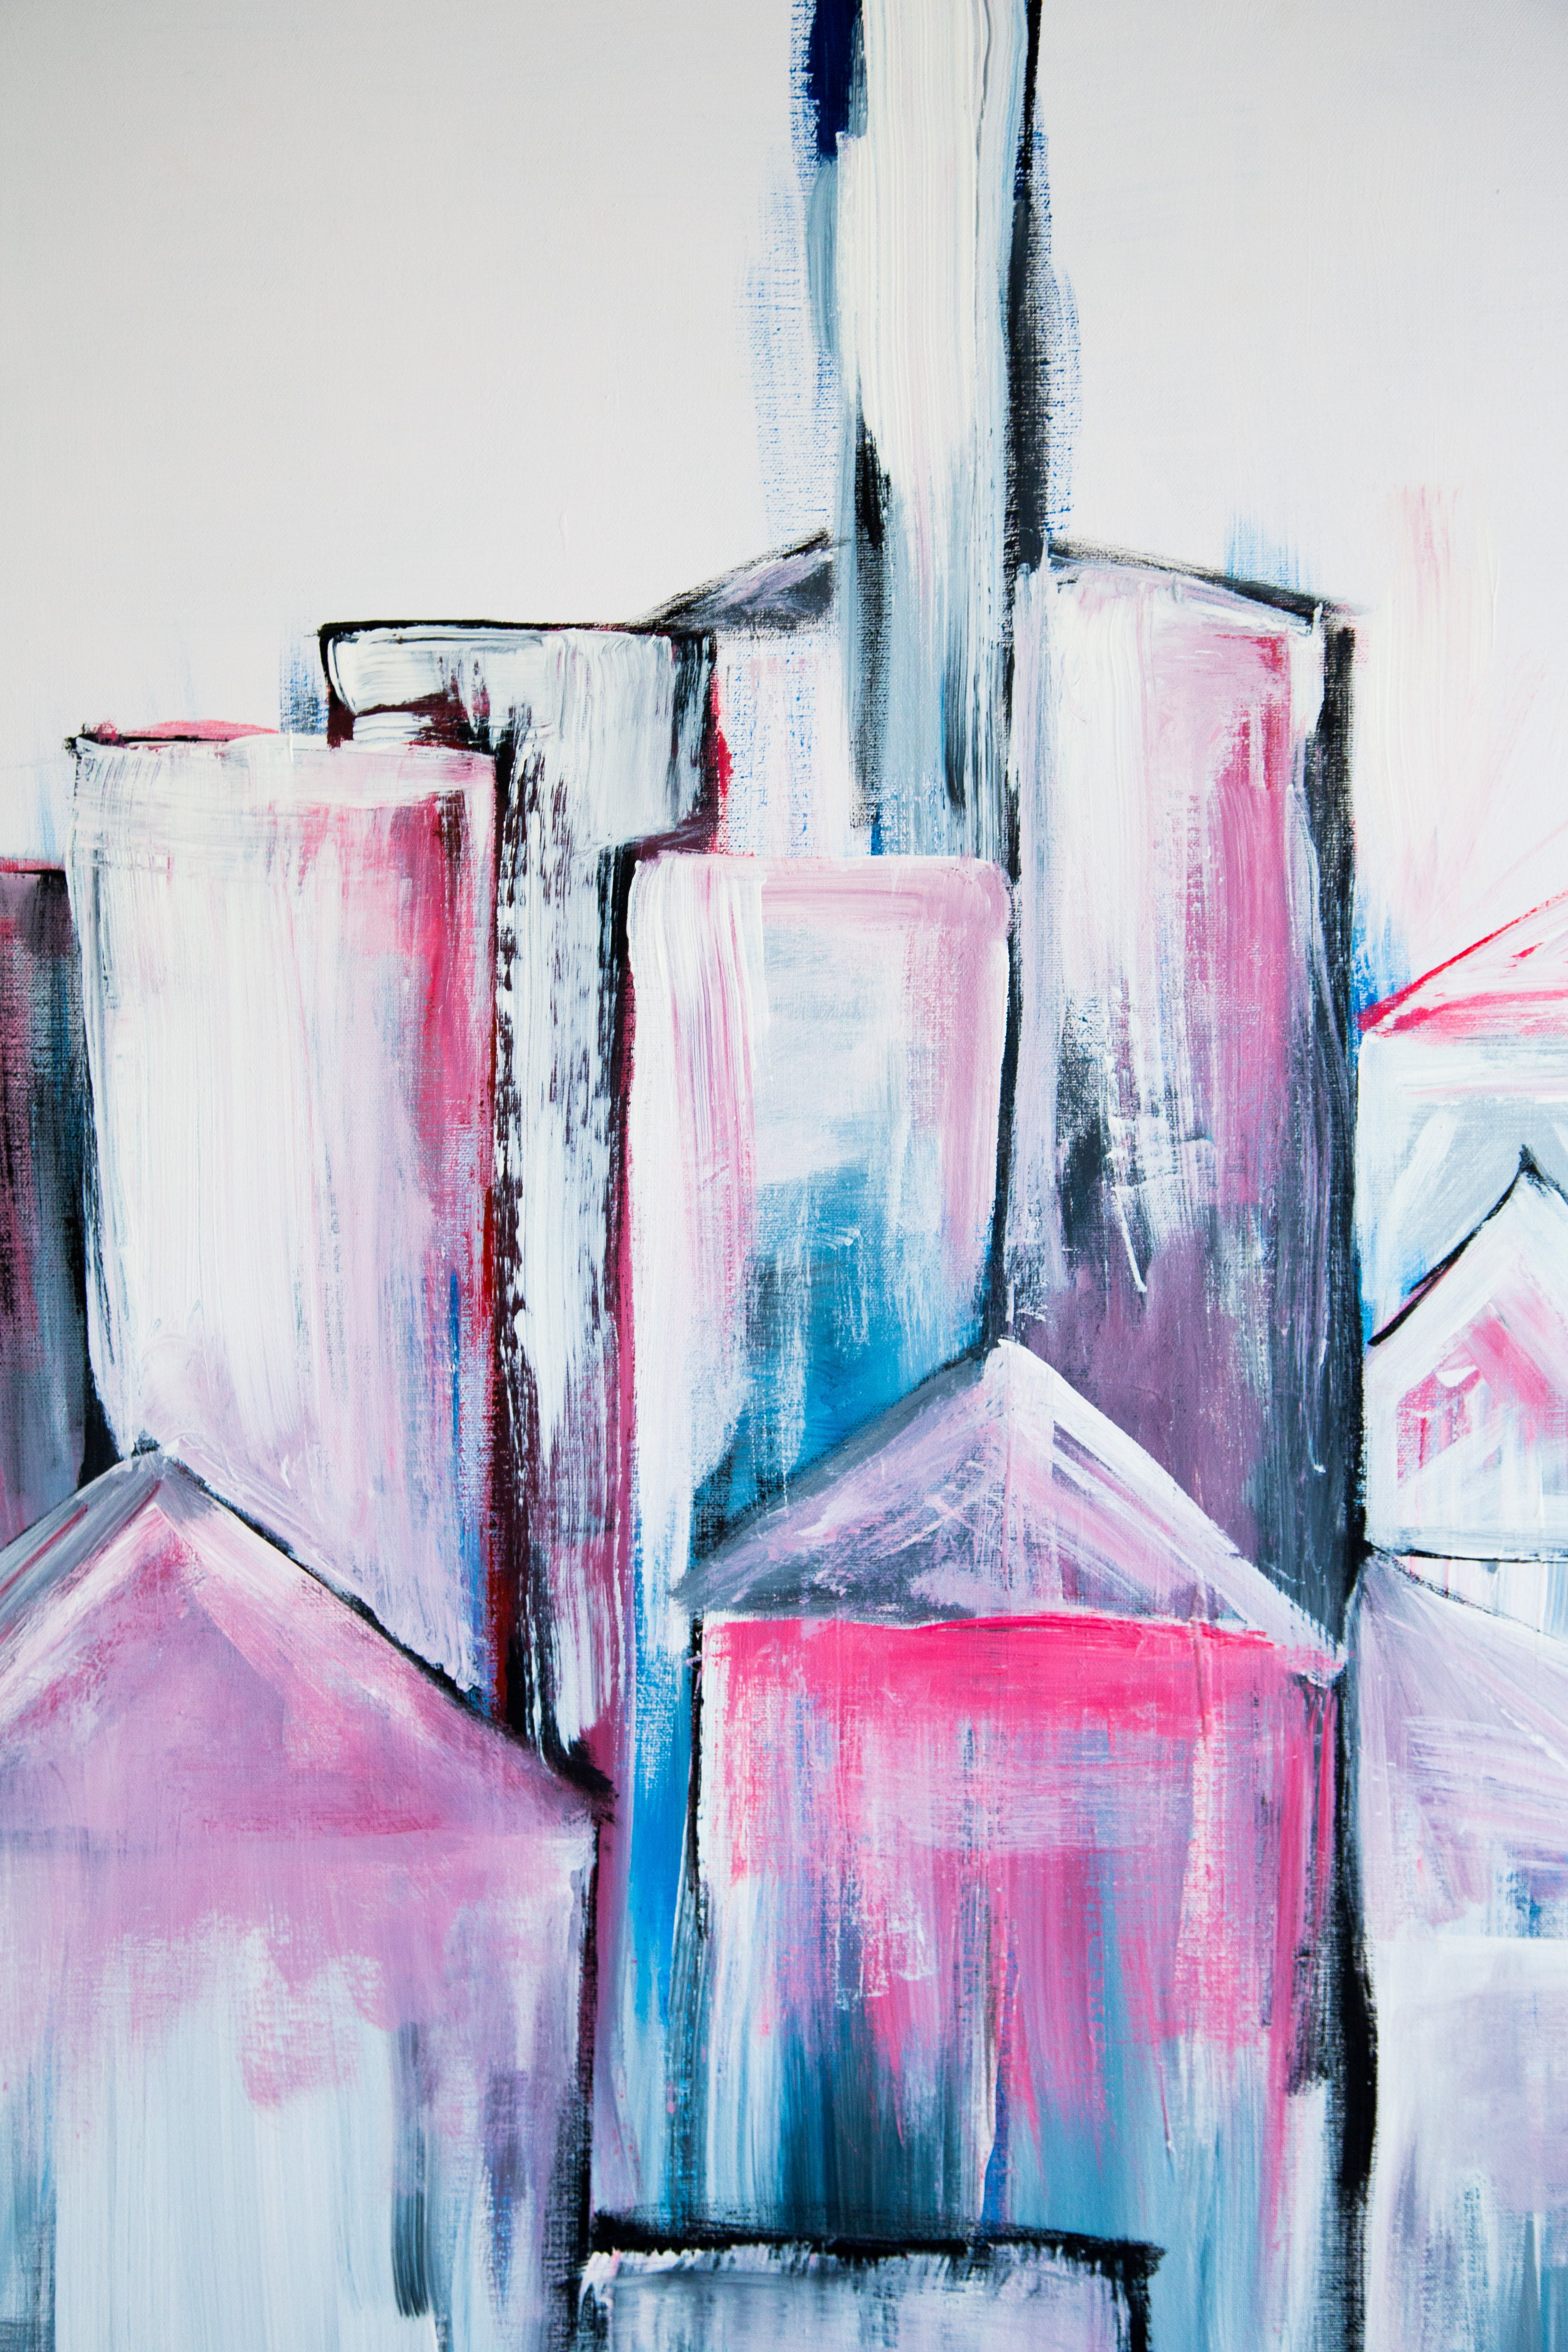 Free stock photo of abstract, apartments, art, buildings